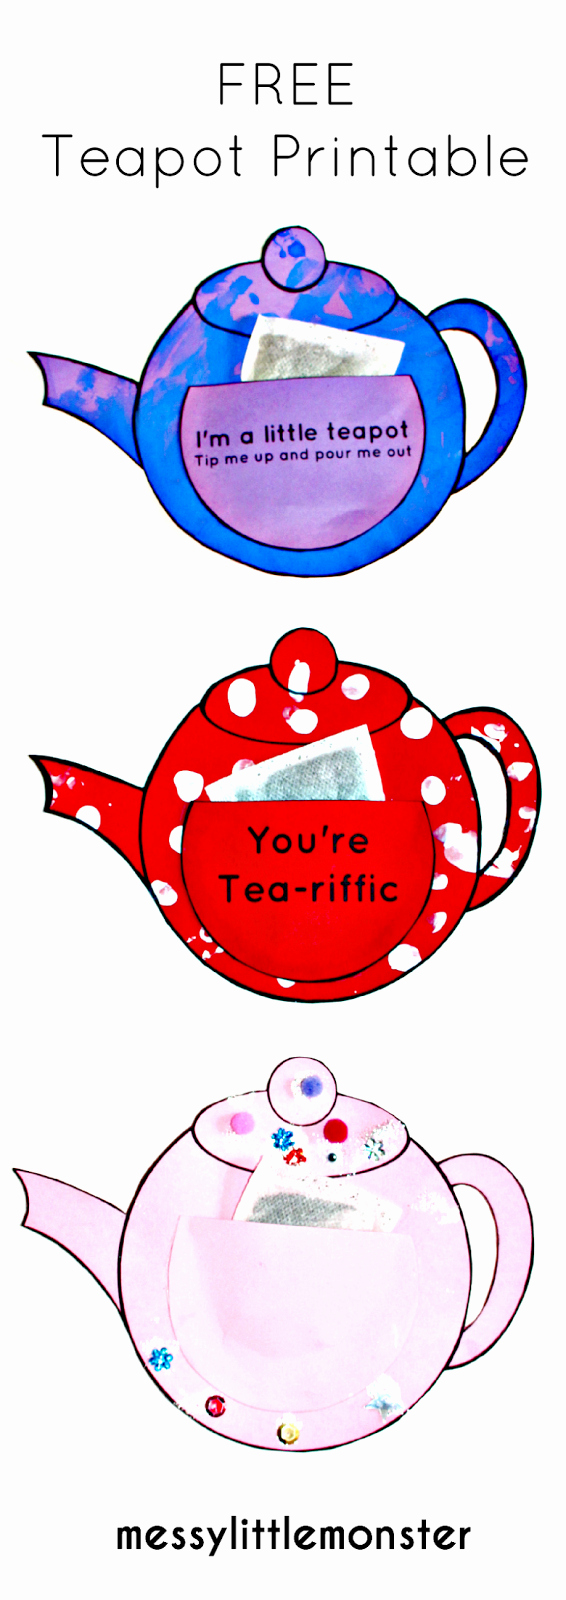 Teapot Templates Free Printable Fresh You Re Tea Riffic Teapot Craft Free Printable Teapot